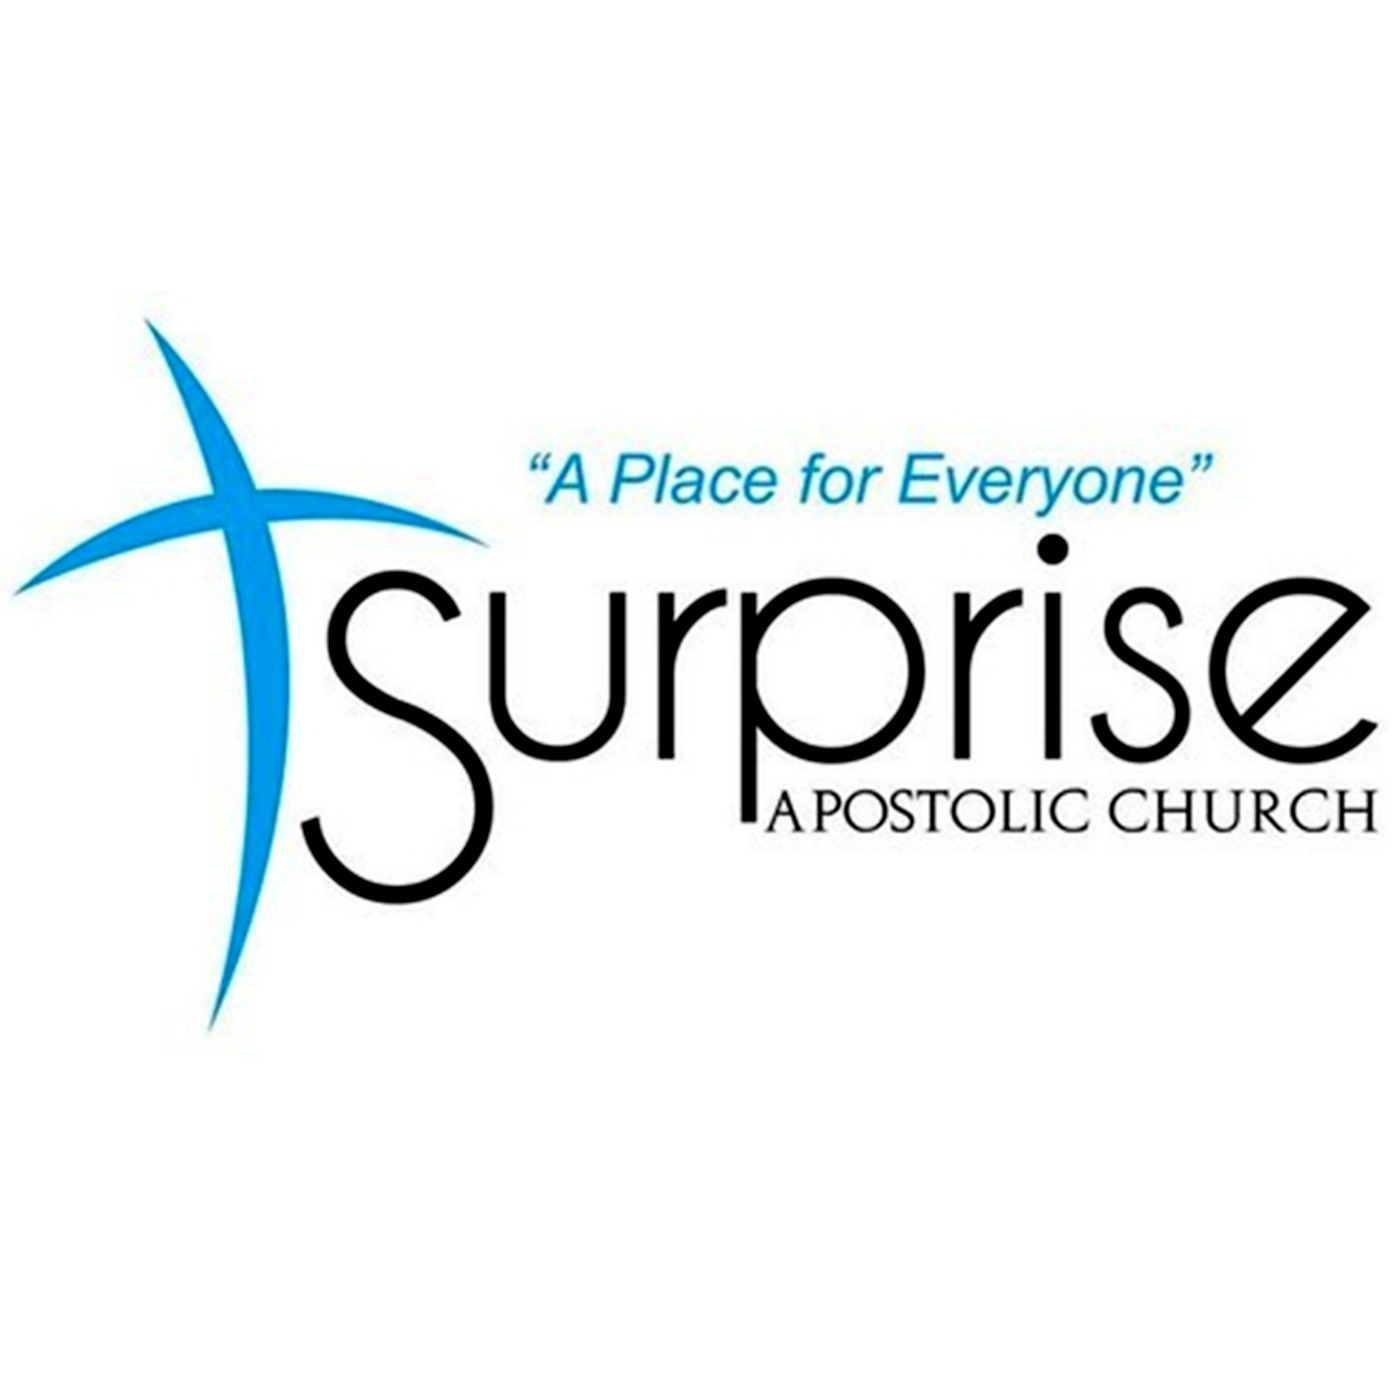 Surprise Apostolic Church